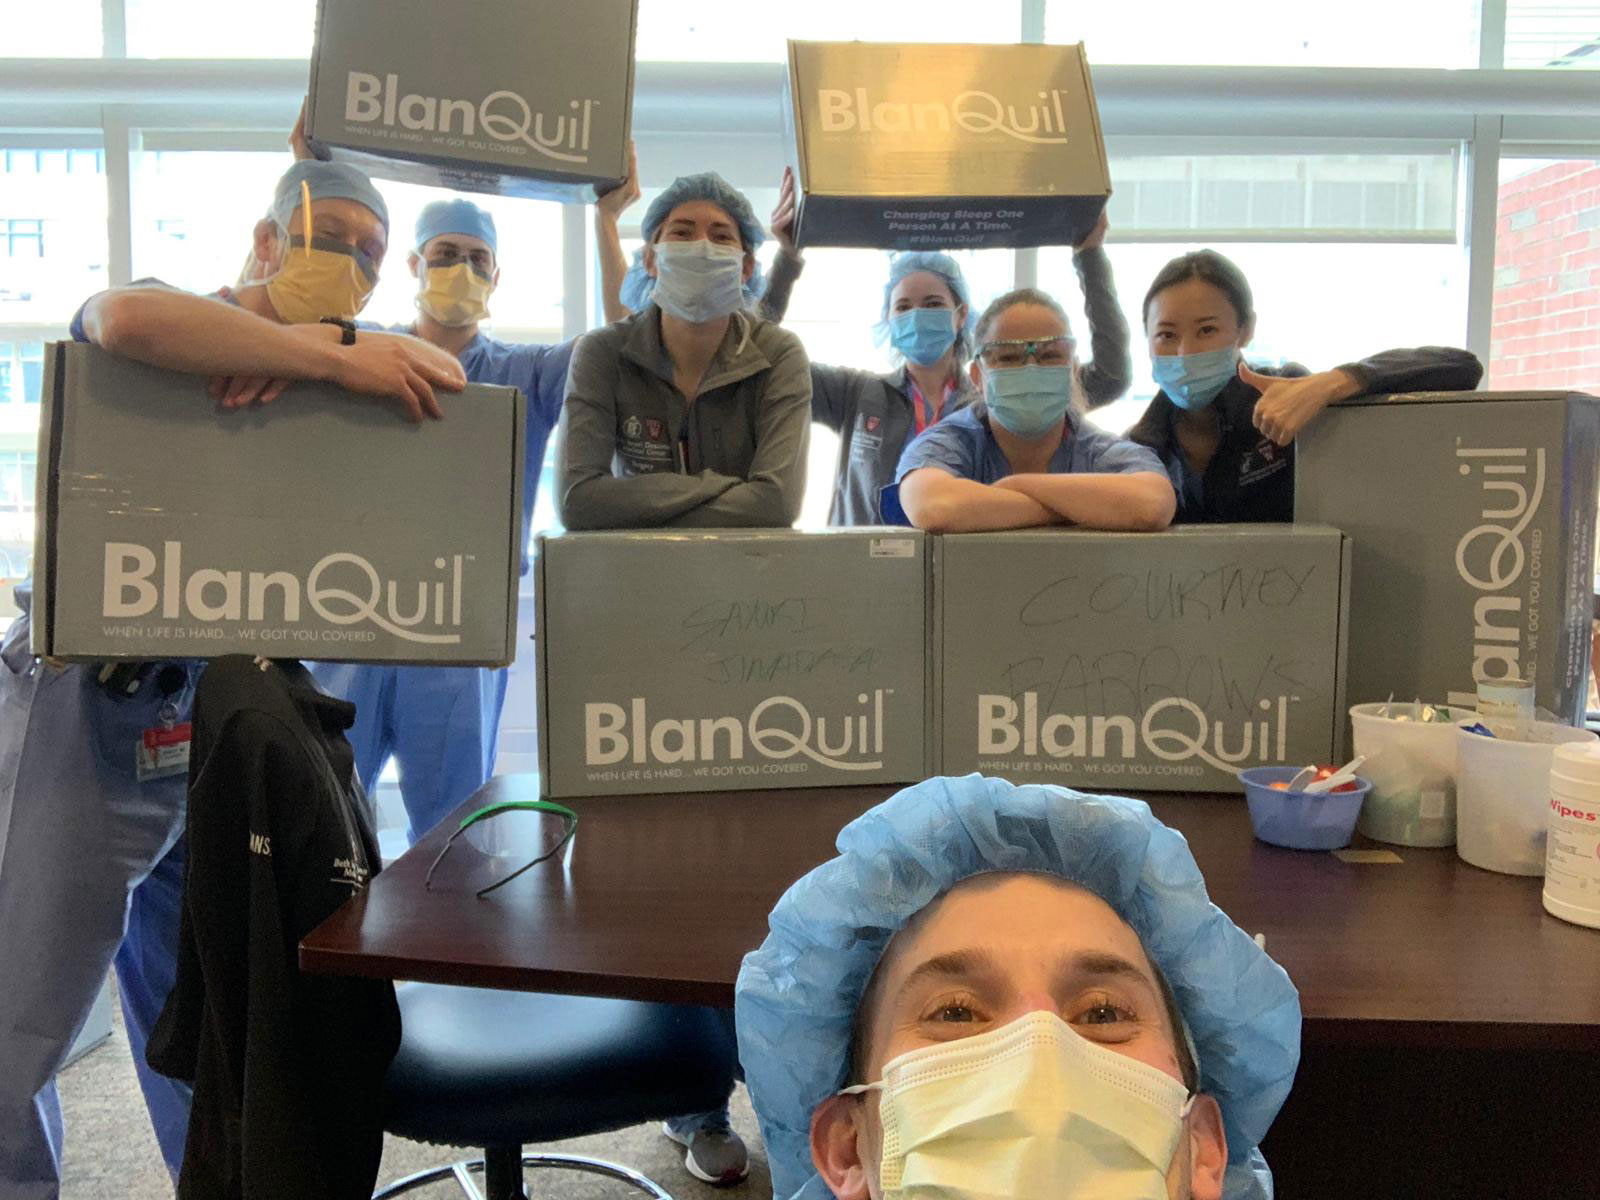 BlanQuil had the pleasure of giving out BlanQuils to Frontline Workers at Beth Israel Deaconess Medical Center on Thursday. We appreciate everything they are doing to help save lives. We want to thank all First Responders and everyone who risks their lives to help others in need. You all deserve a good night's sleep.